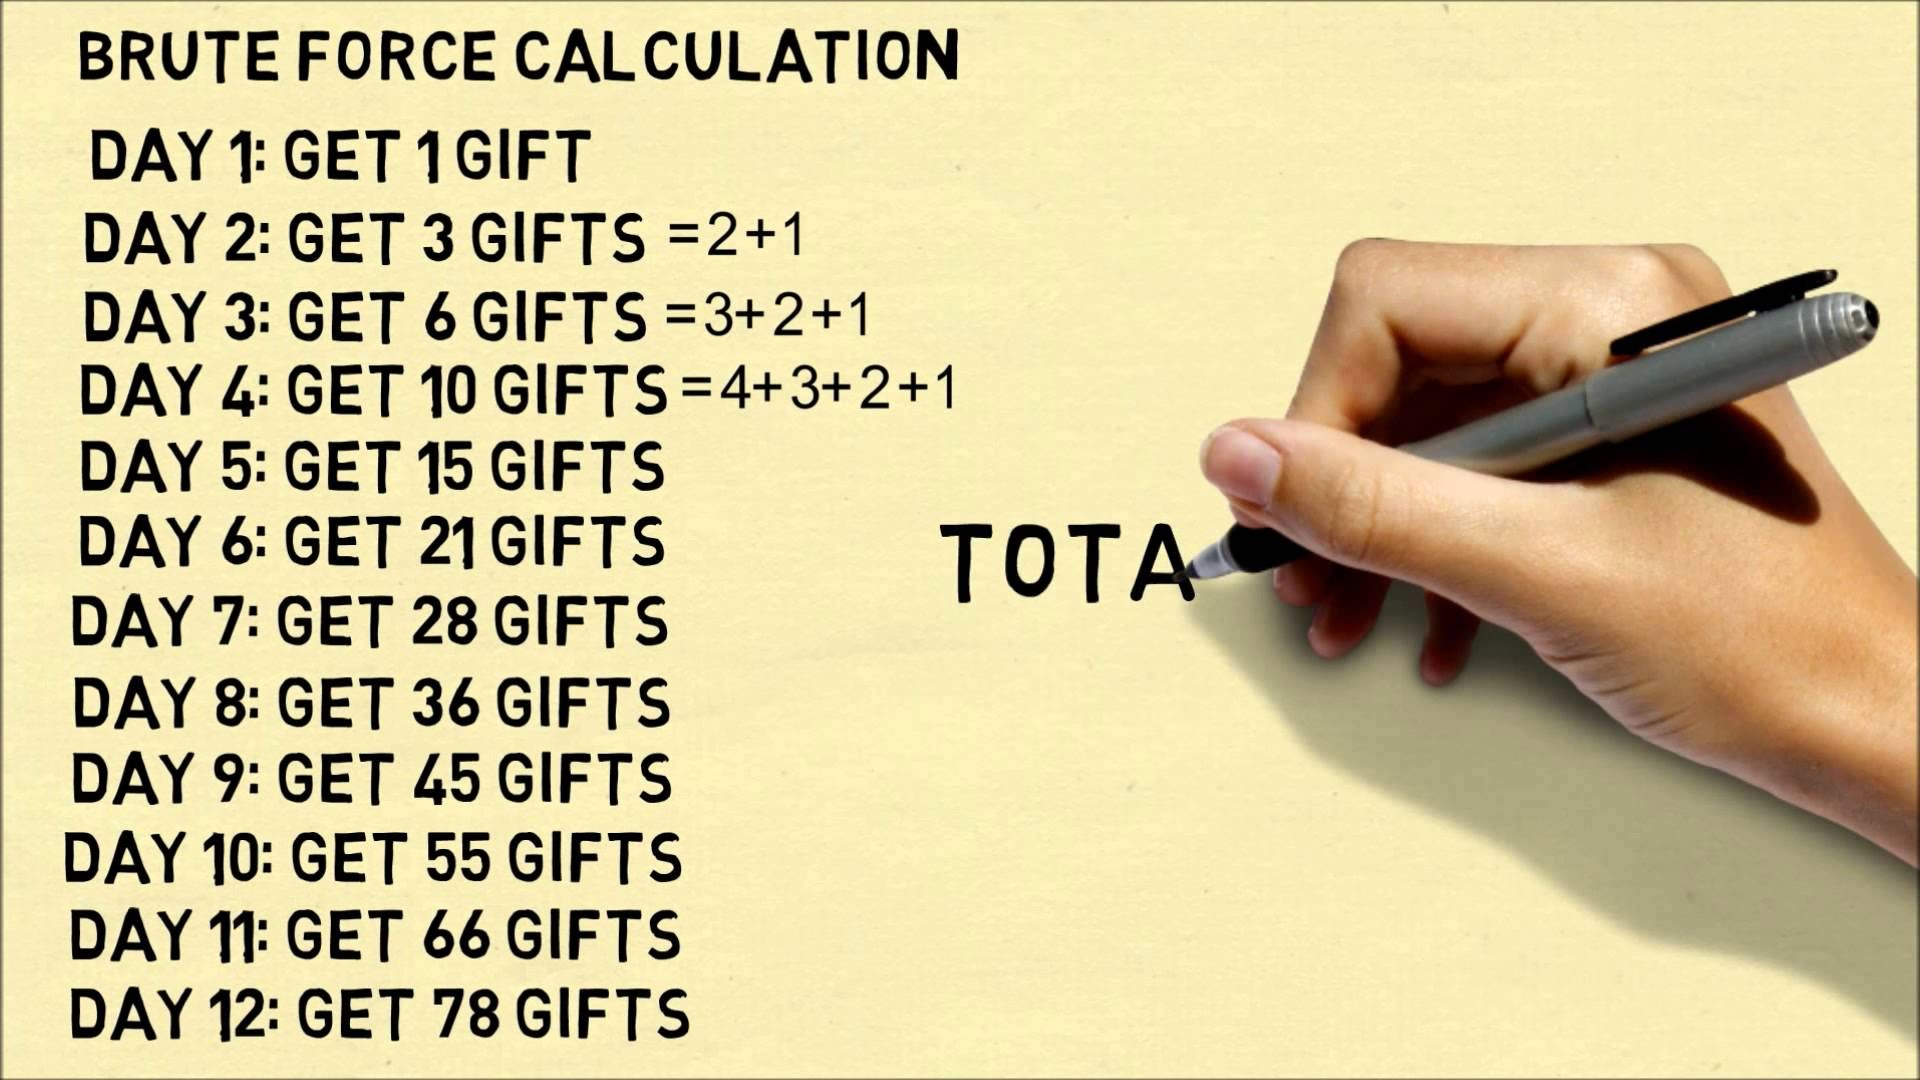 How many gifts should you get for the 12 days of christmas